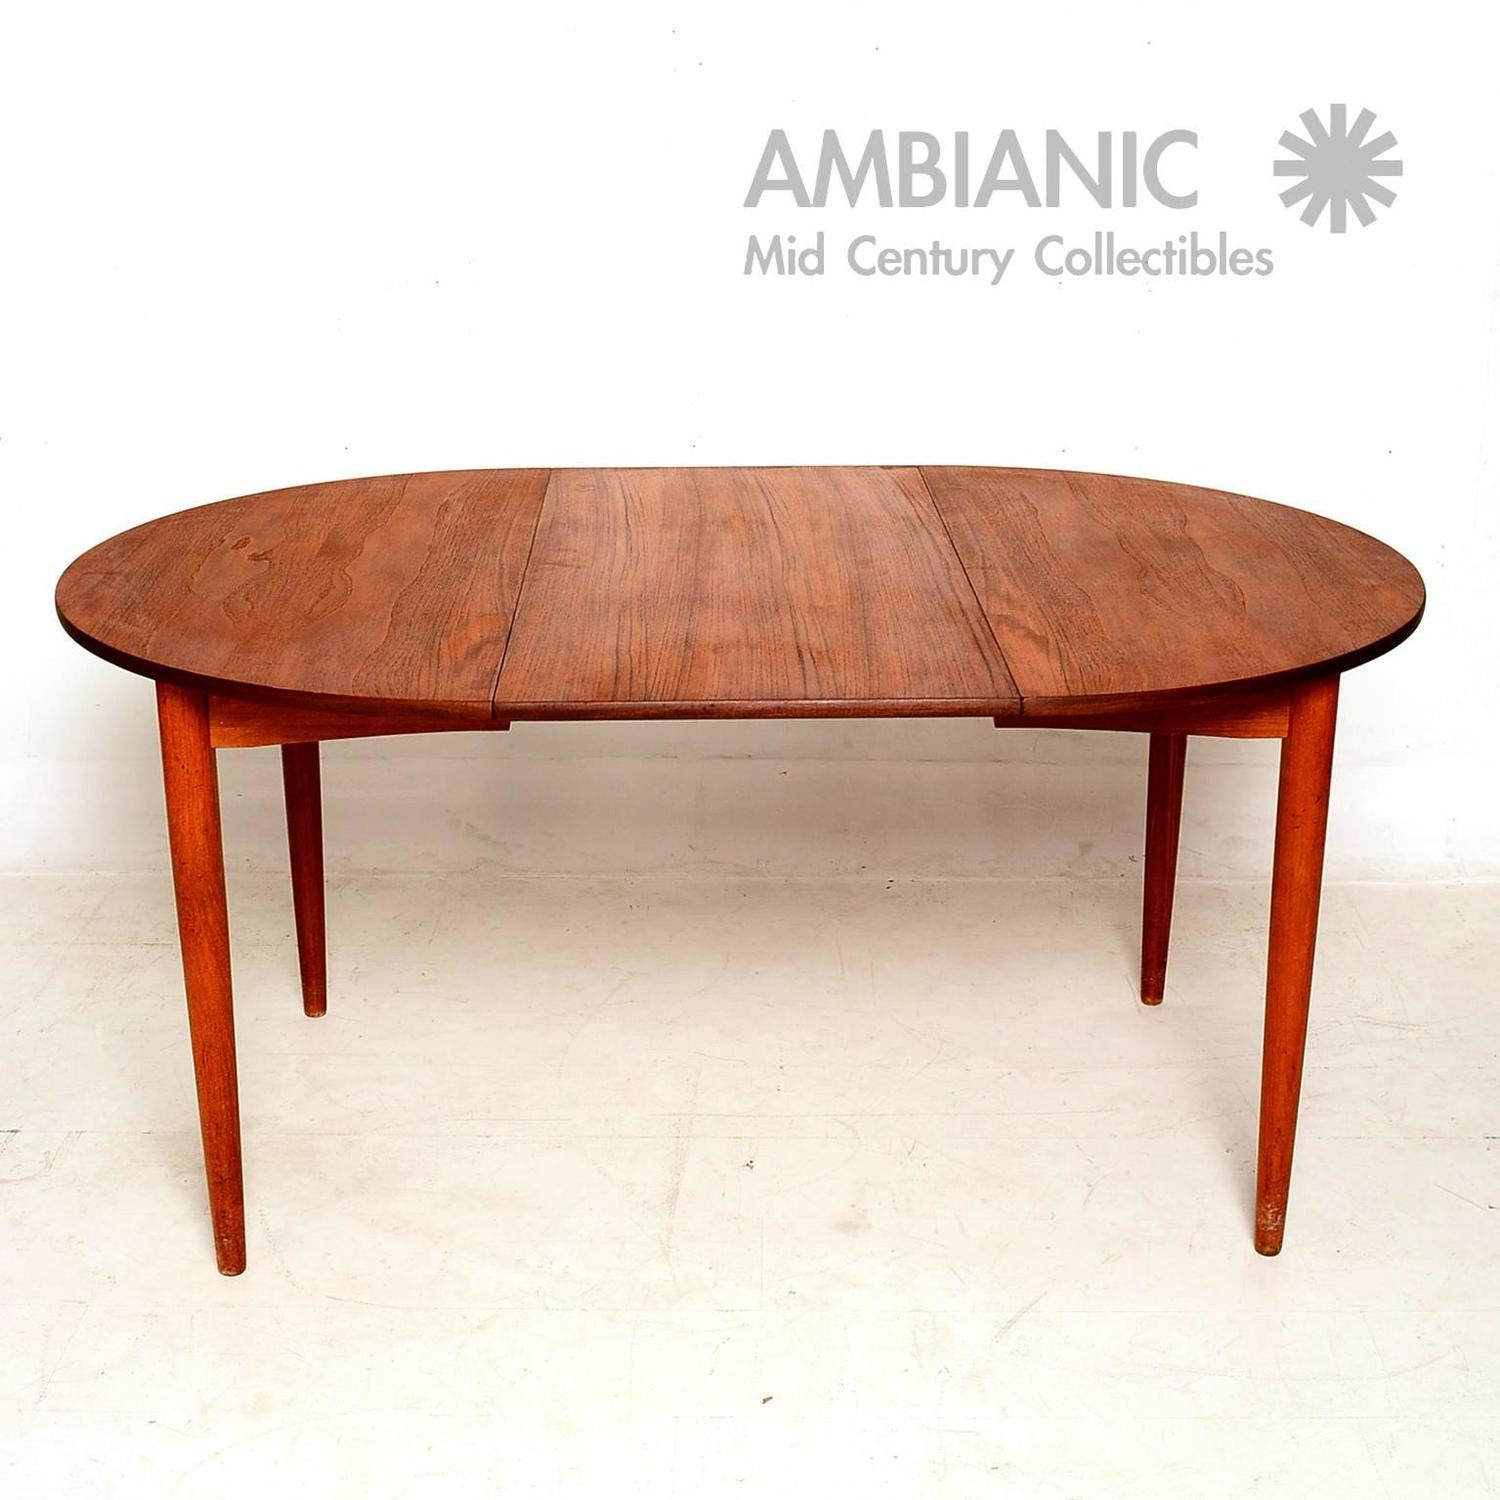 The Table Has Round Shape With One Extension 19 5 8 W X 41 1 2 D